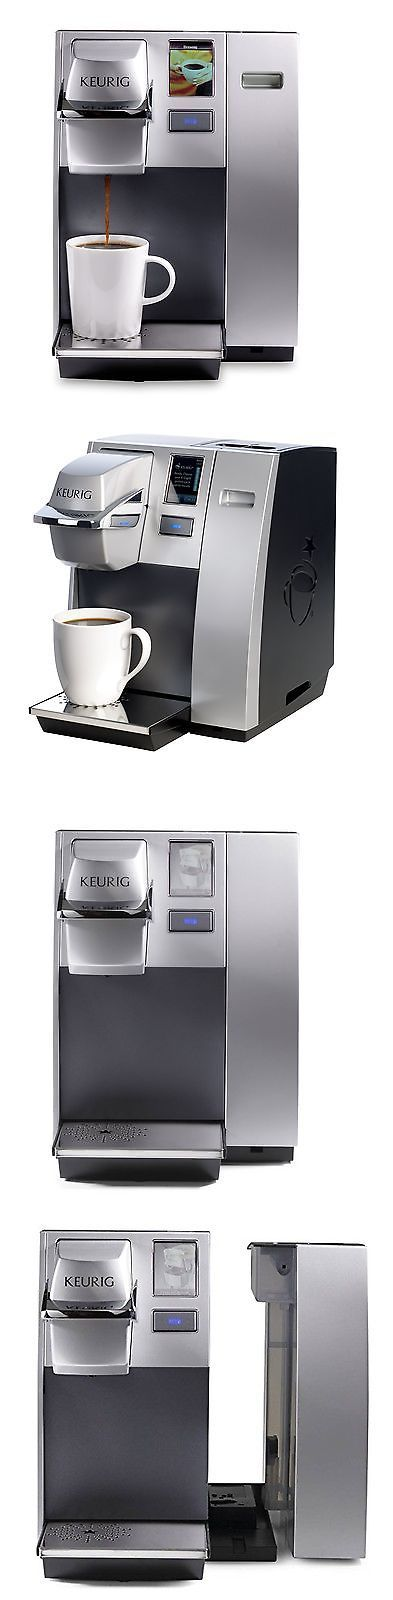 Coffee Makers Automatic 65635: Keurig K155 Office Pro Single Cup Commercial K-Cup Pod Coffee Maker, Silver -> BUY IT NOW ONLY: $250 on eBay!